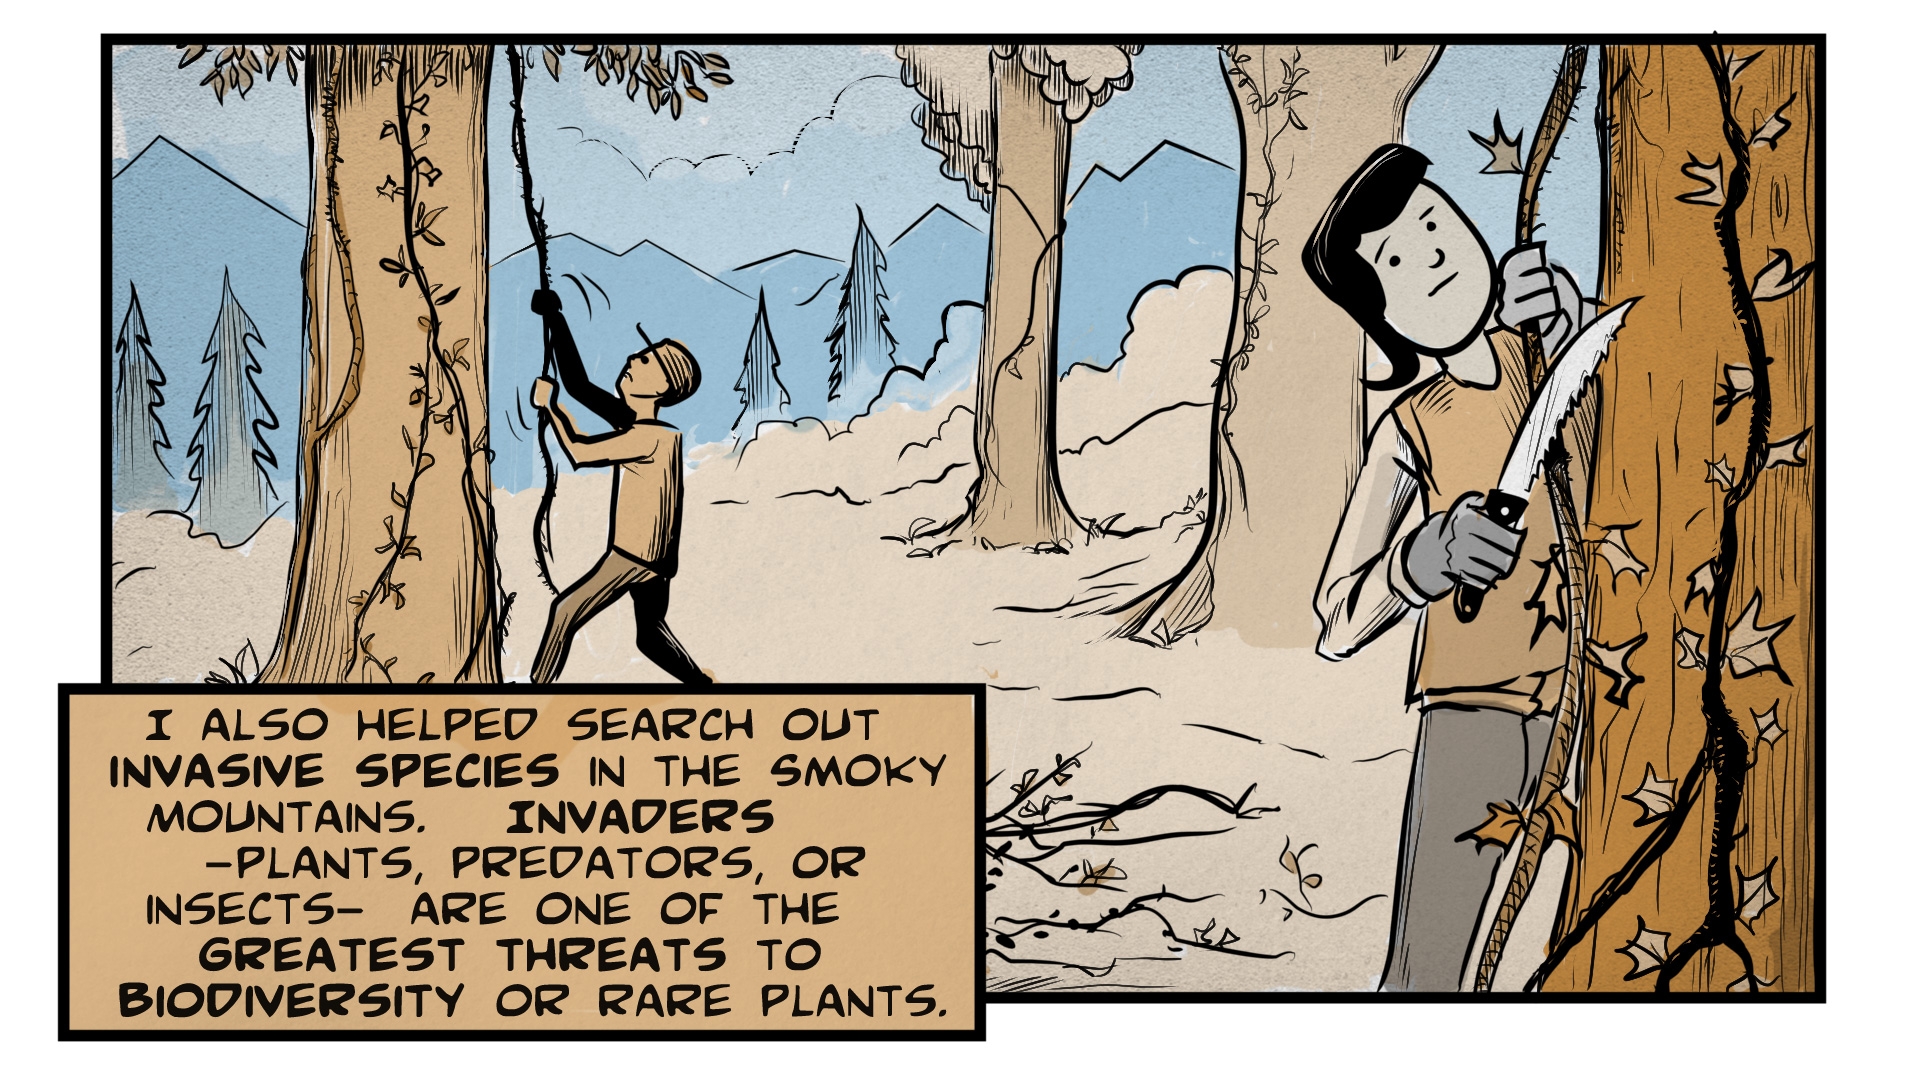 "Carmen, the narrator, says, ""I also helped search out invasive species in the Smoky Mountains. Invaders -- plants, predators, or insects -- are one of the greatest threats to biodiversity or rare plants."" She stands in a forest, using a handsaw to hack through some invasive vines growing up a tree. A man in the background is wrestling with some other vines."